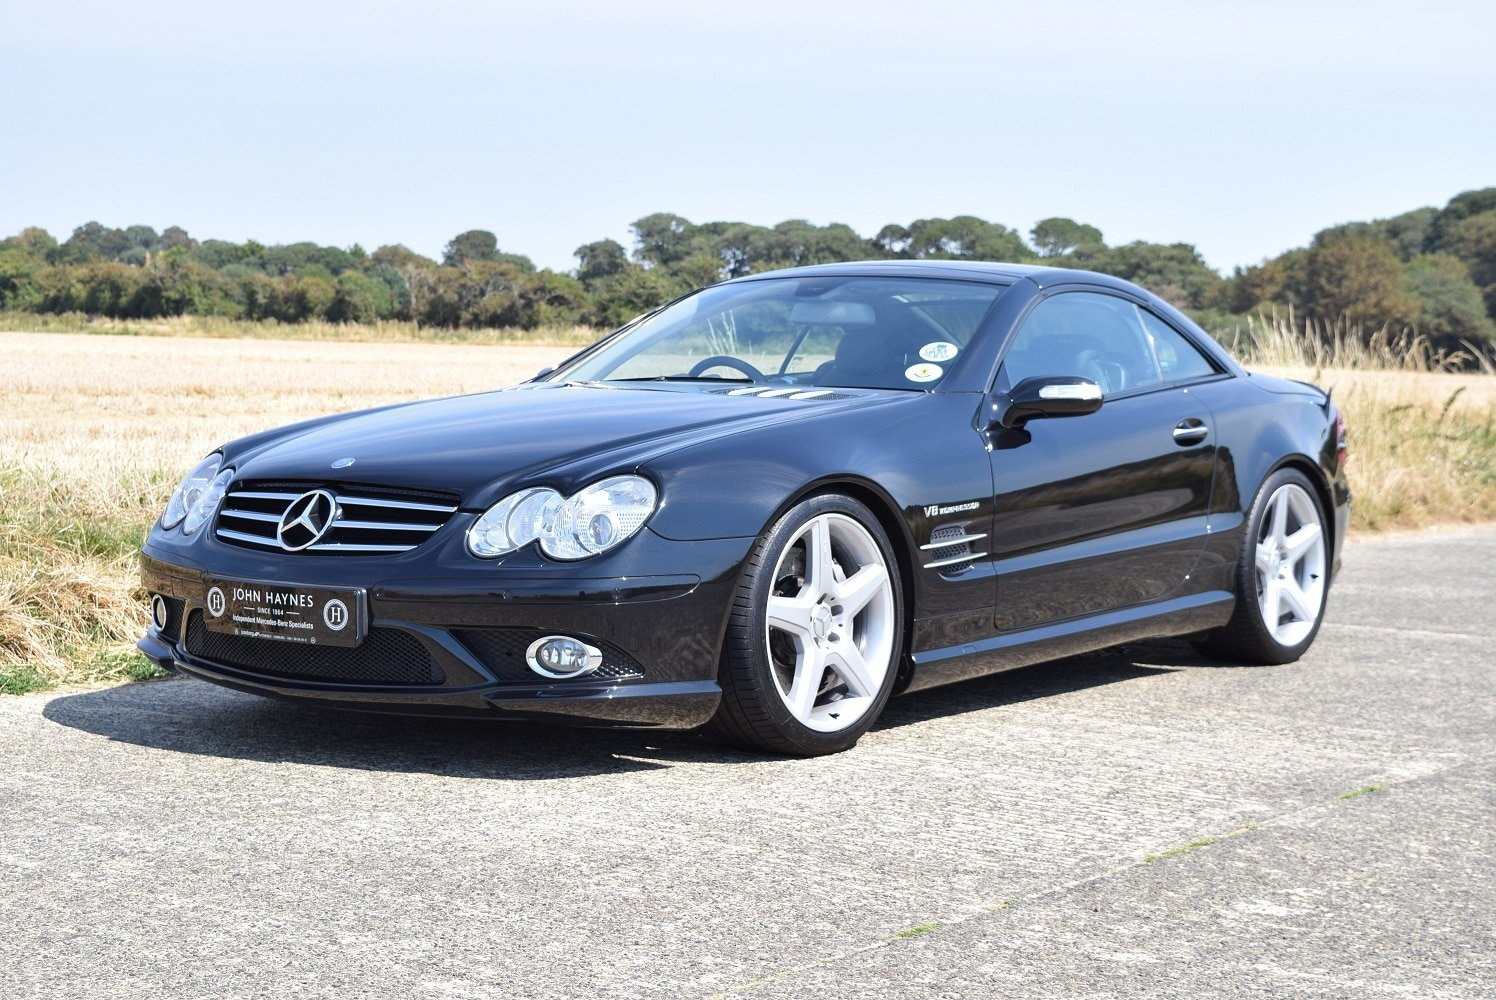 2006 Mercedes Benz SL55 AMG For Sale (picture 1 of 6)